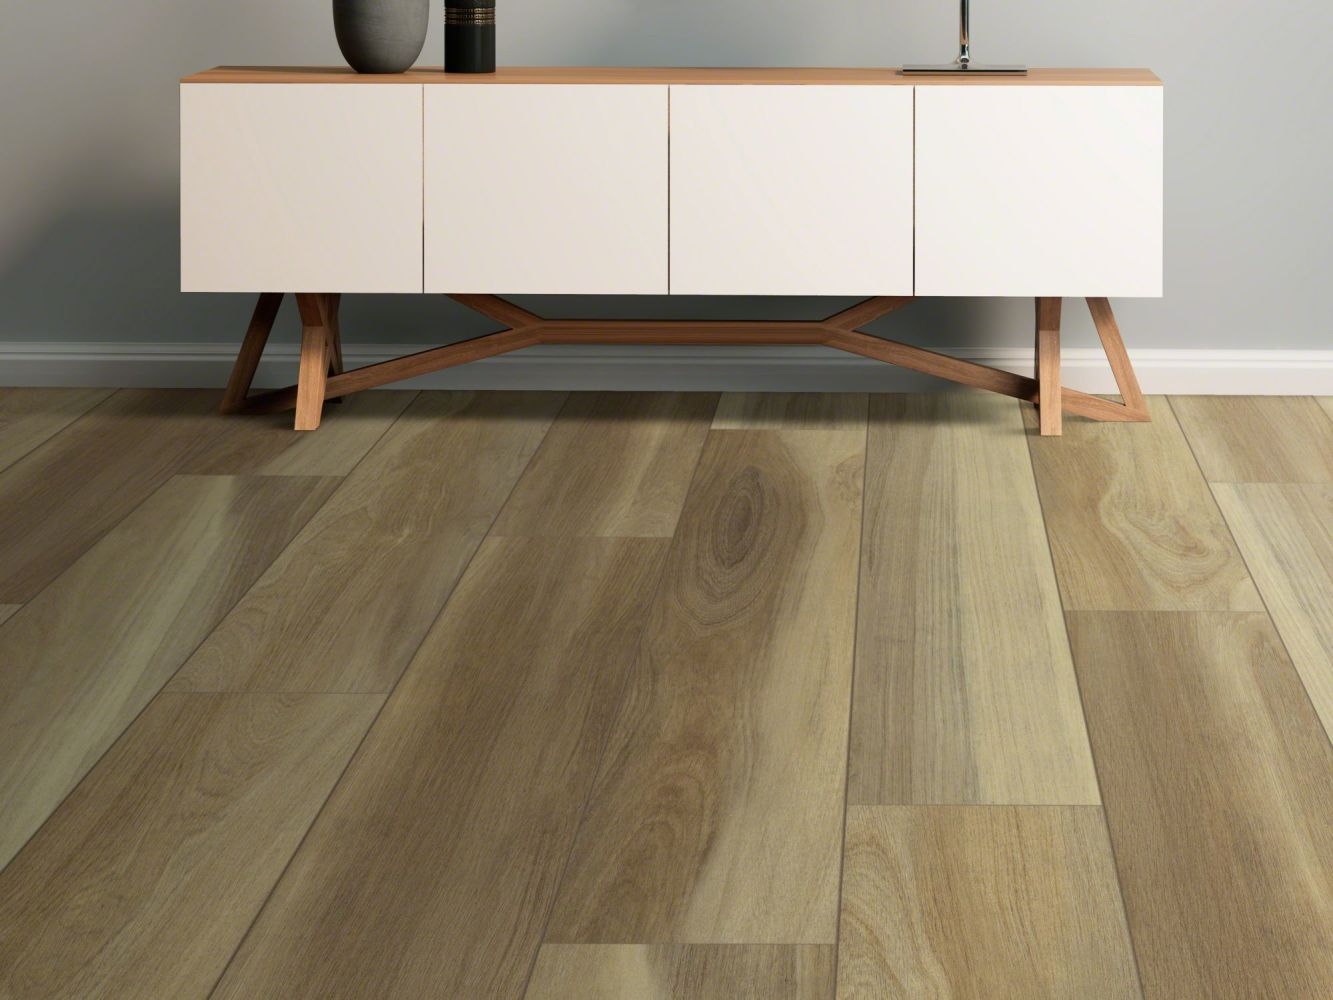 Shaw Floors Resilient Residential Intrepid HD Plus Shawshank Oak 00168_2024V